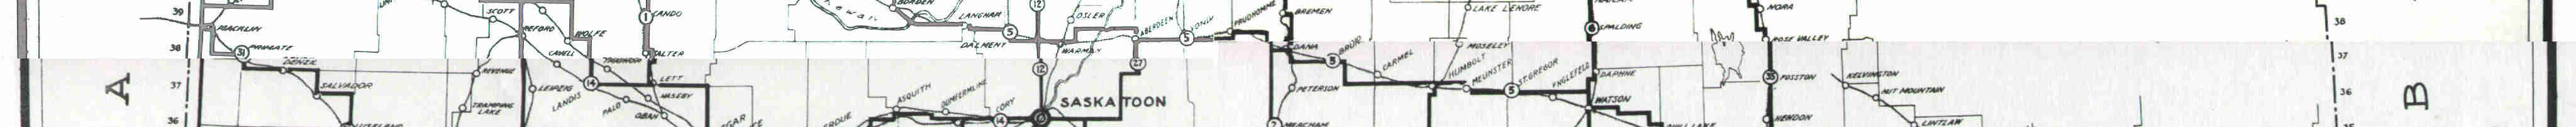 1926 Highway Map: Province of Saskatchewan.